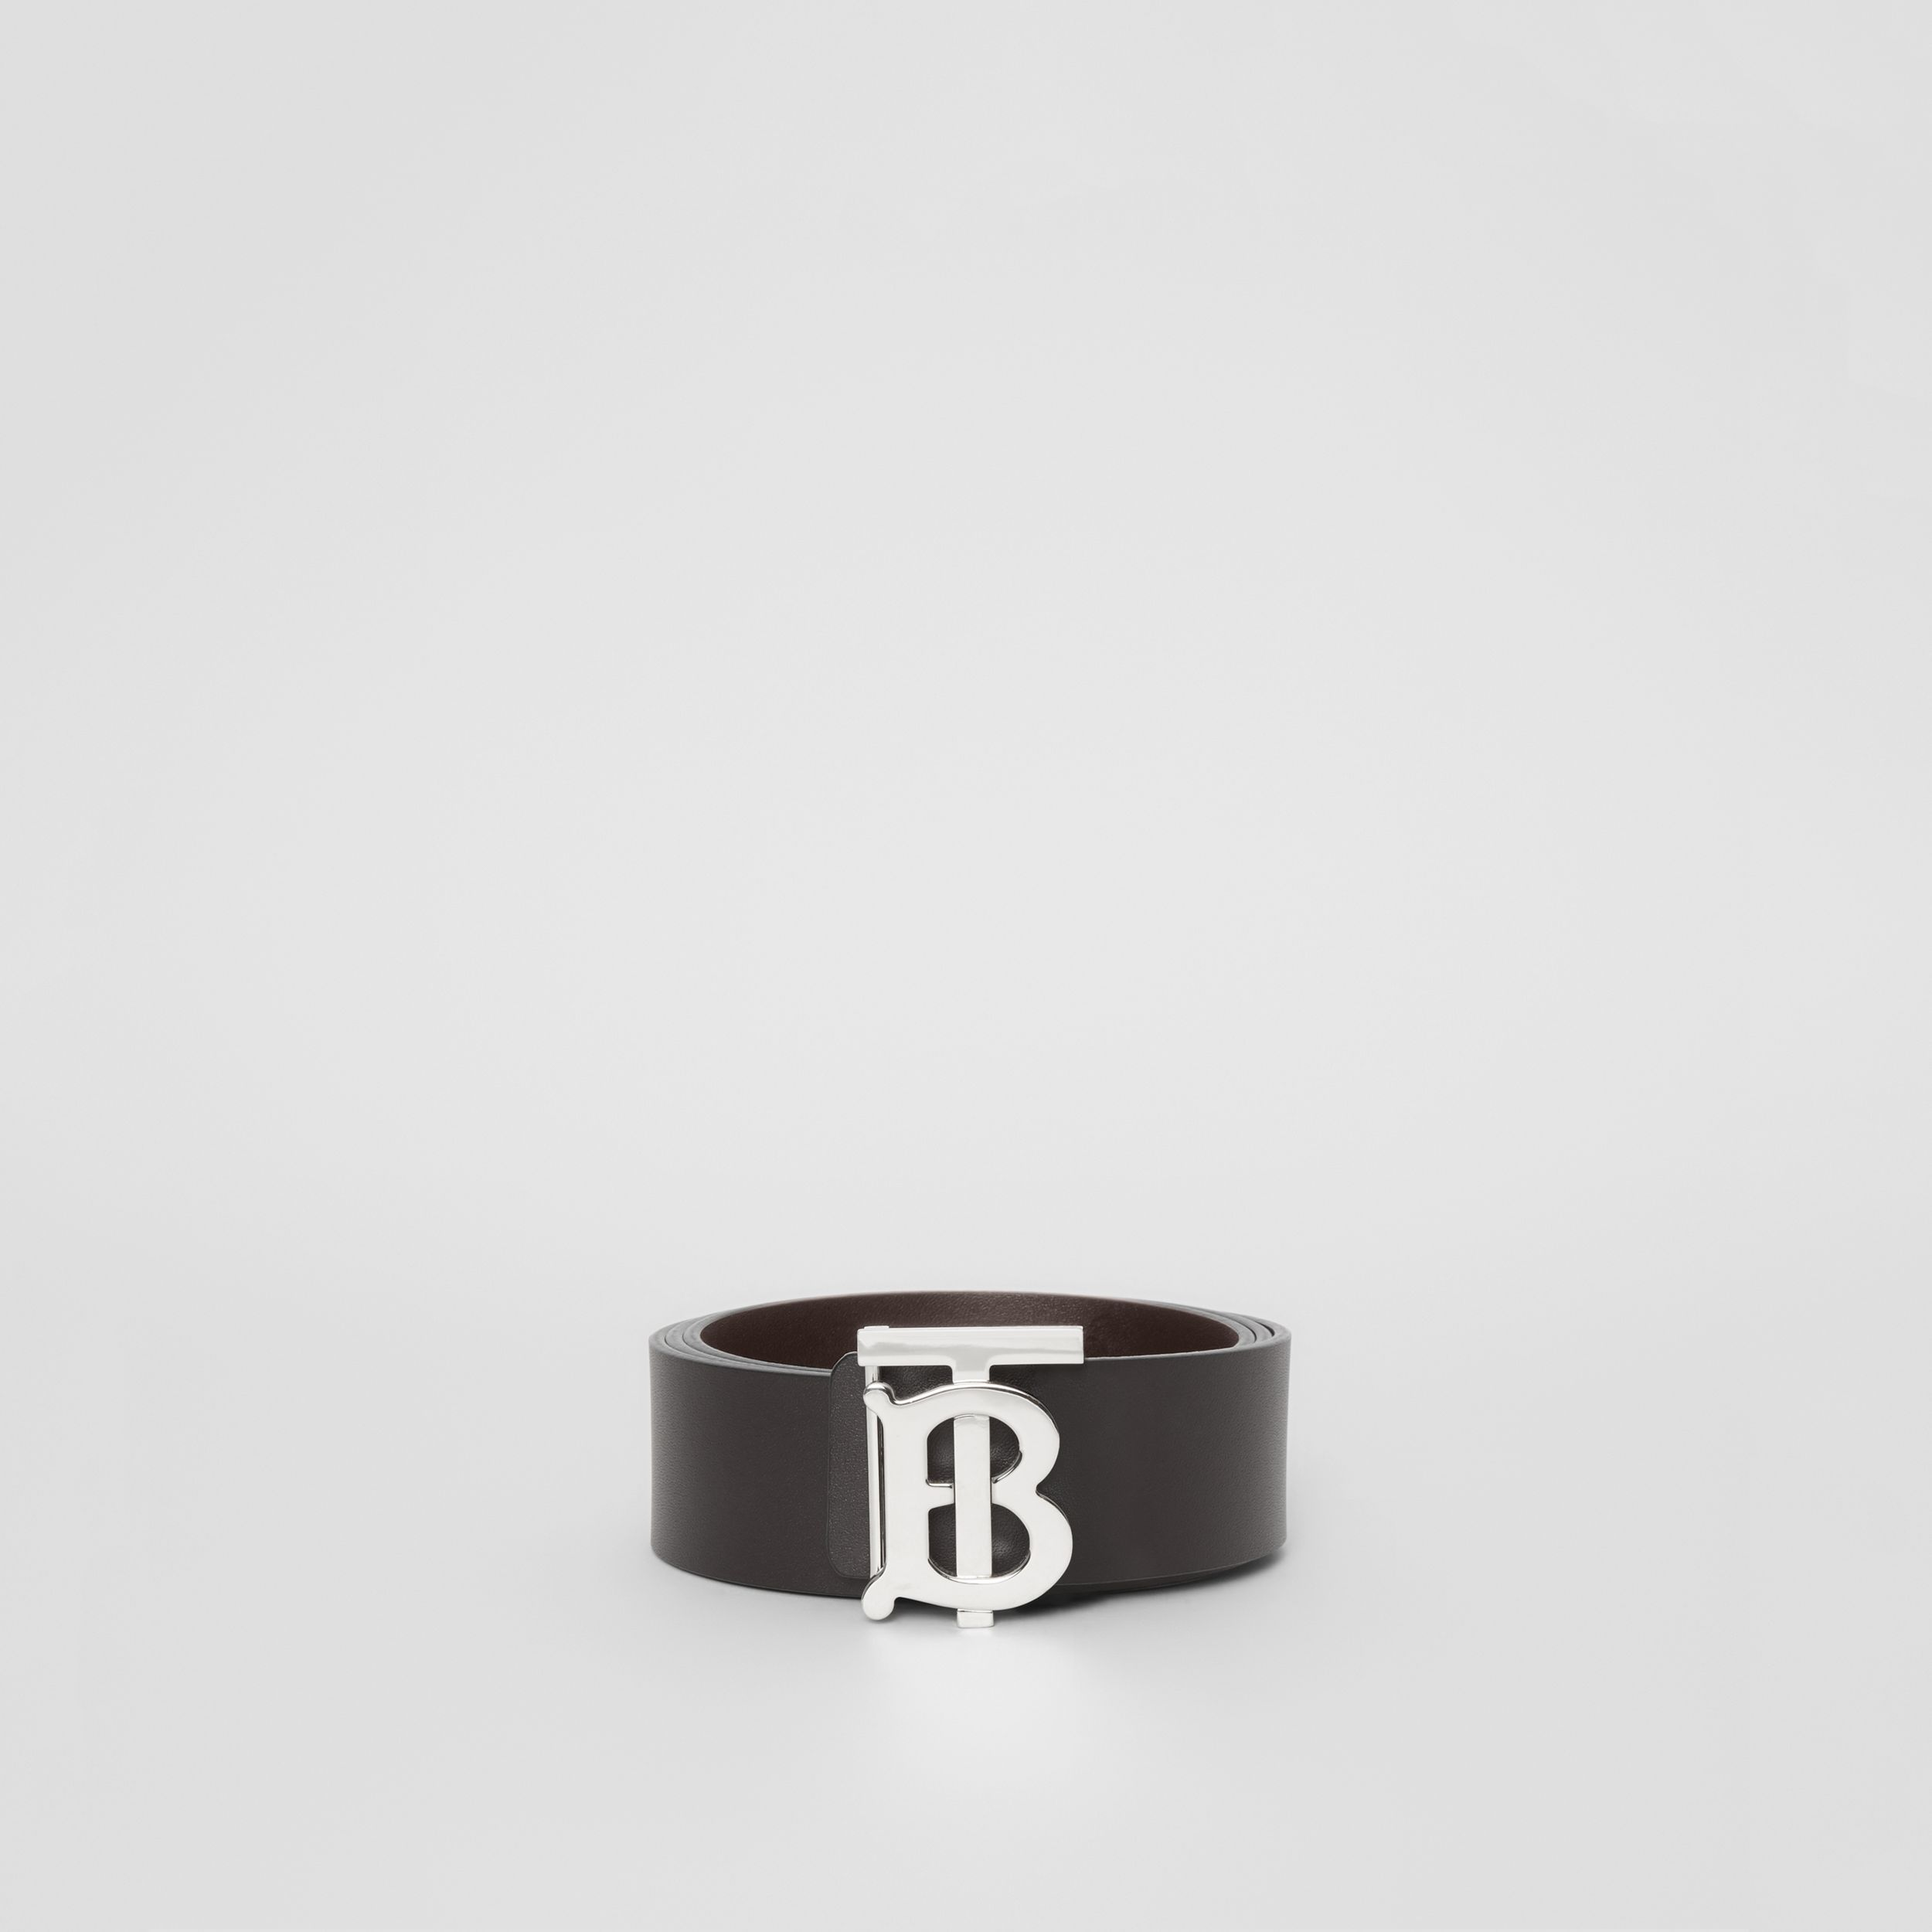 Reversible Monogram Motif Leather Belt in Black/malt Brown - Men | Burberry - 3